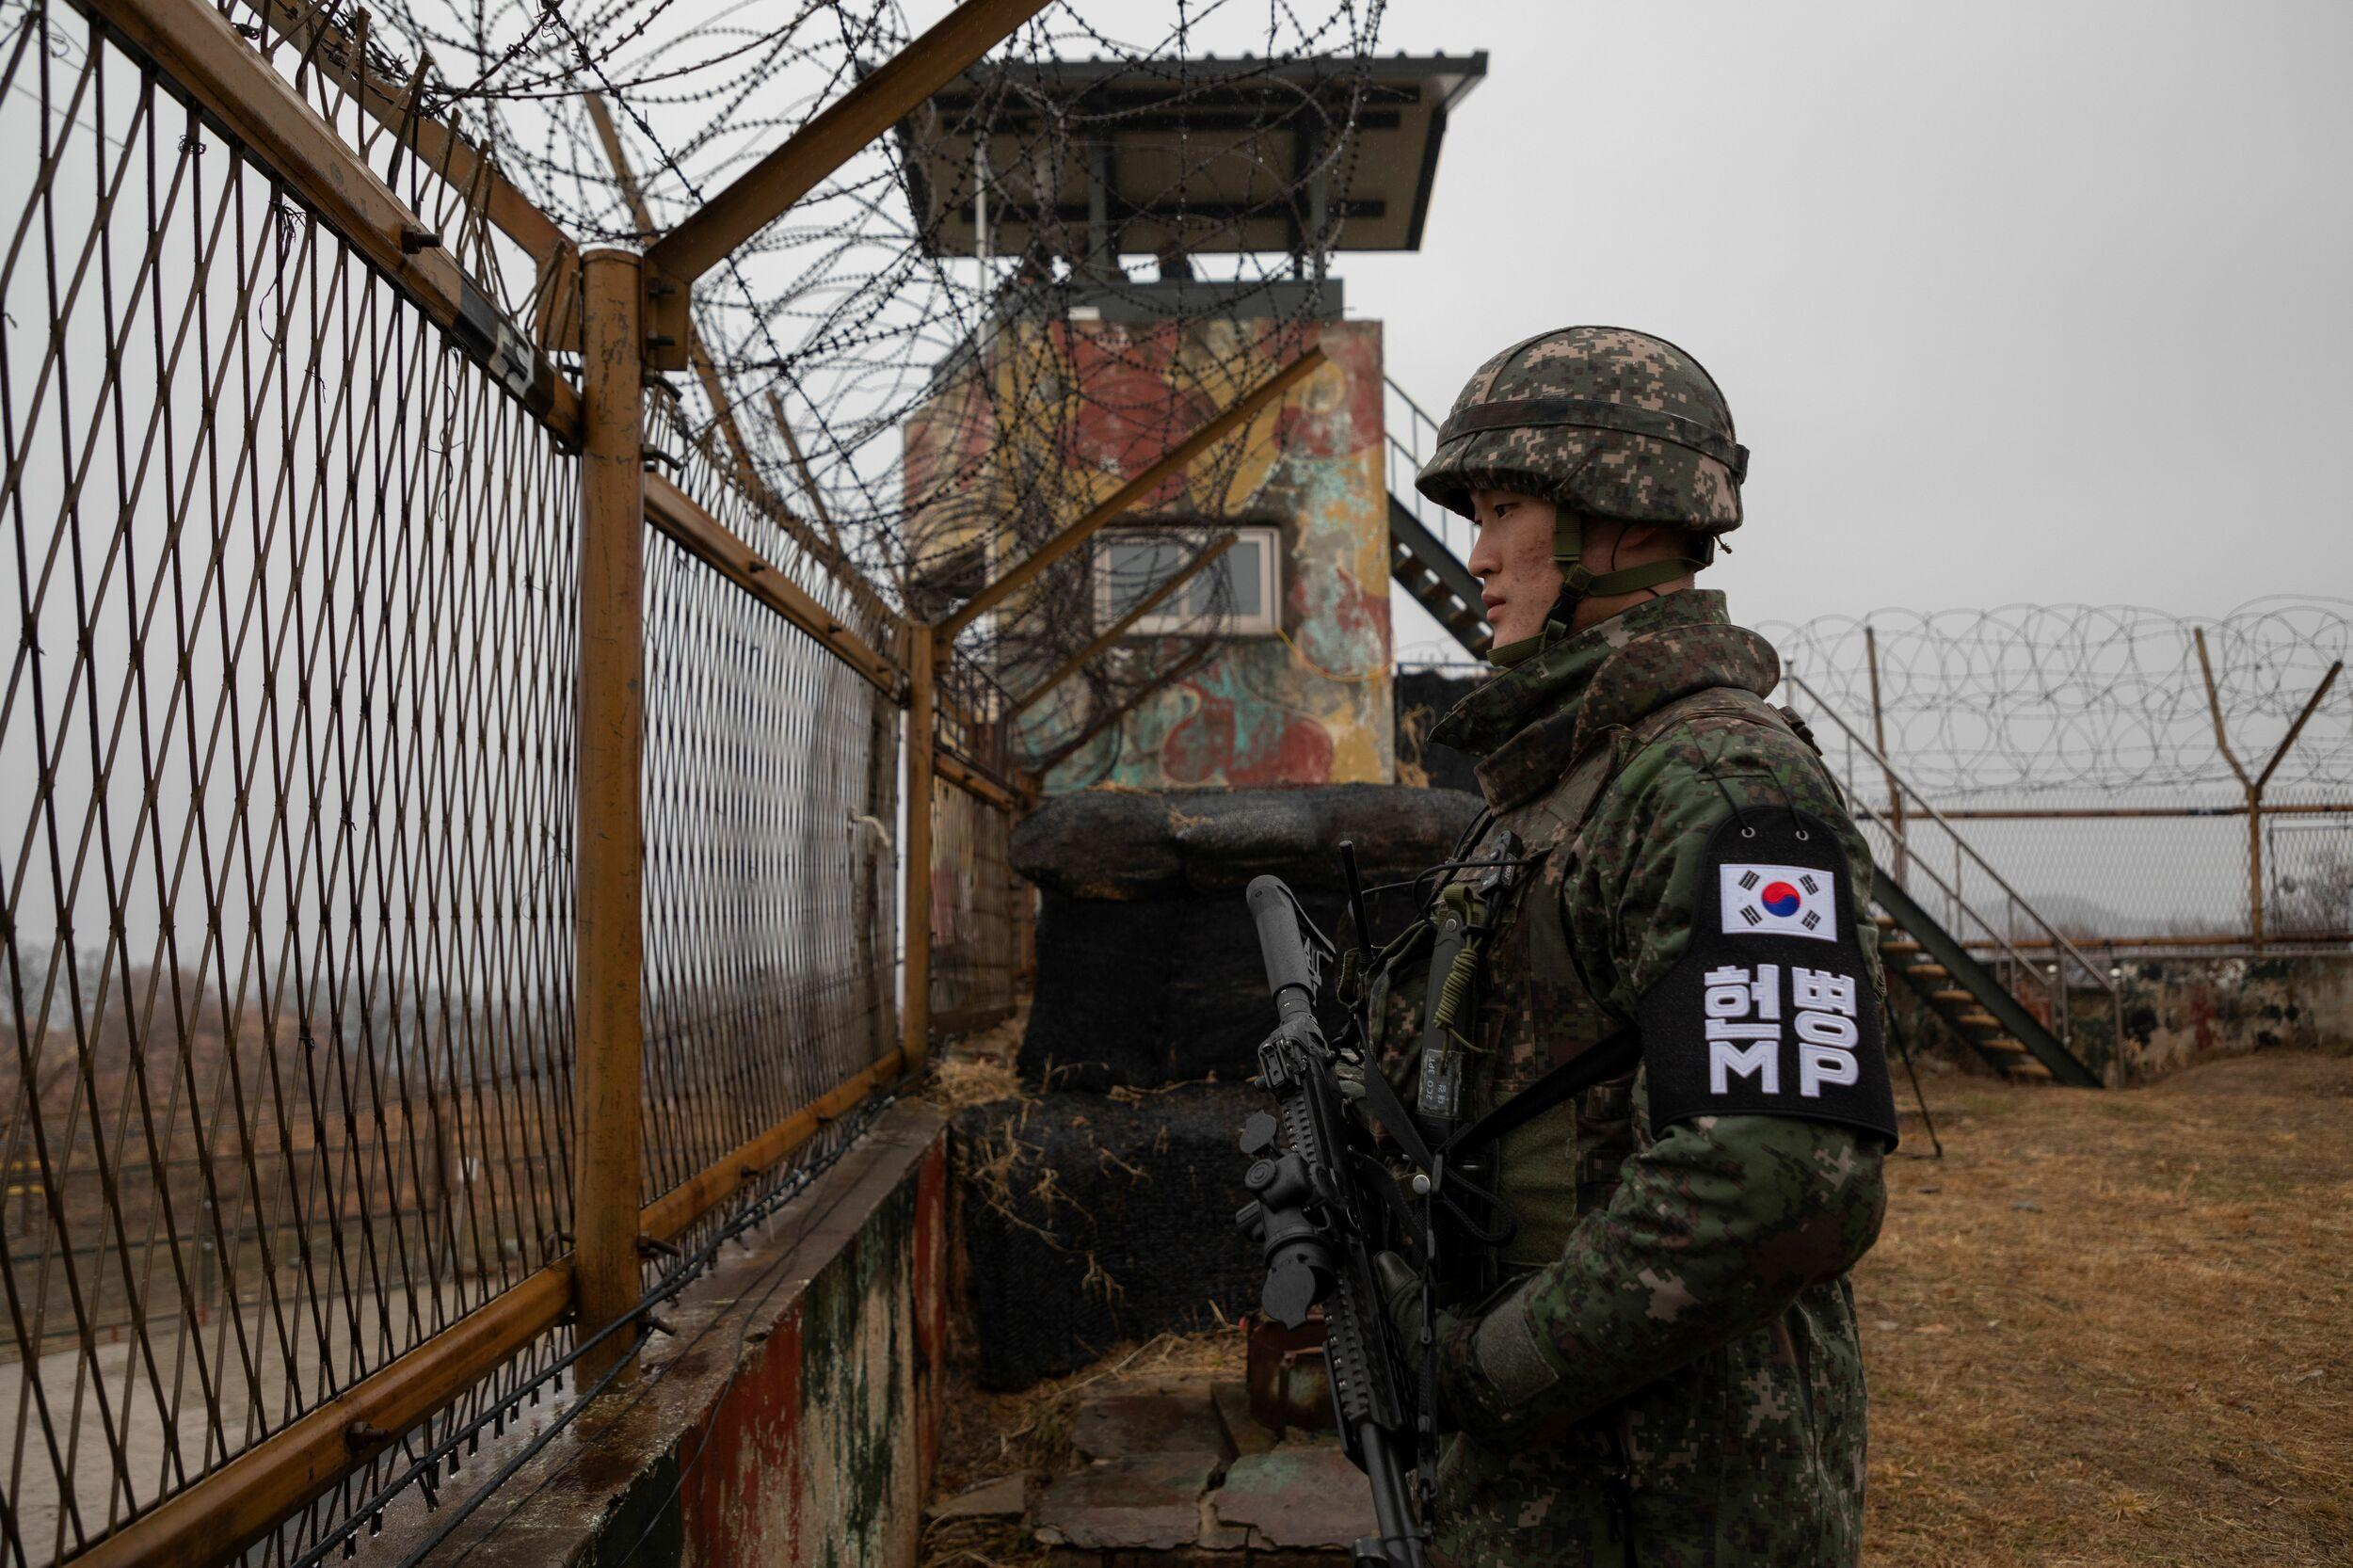 In a photo taken on December 3, 2018 a South Korean soldier stands before a security fence at a guard post inside the Demilitarized Zone (DMZ) near the Military Demarcation Line (MDL) separating North and South Korea, in South Korea's Cheorwon county. (Photo by Yelim LEE / AFP)        (Photo credit should read YELIM LEE/AFP/Getty Images)